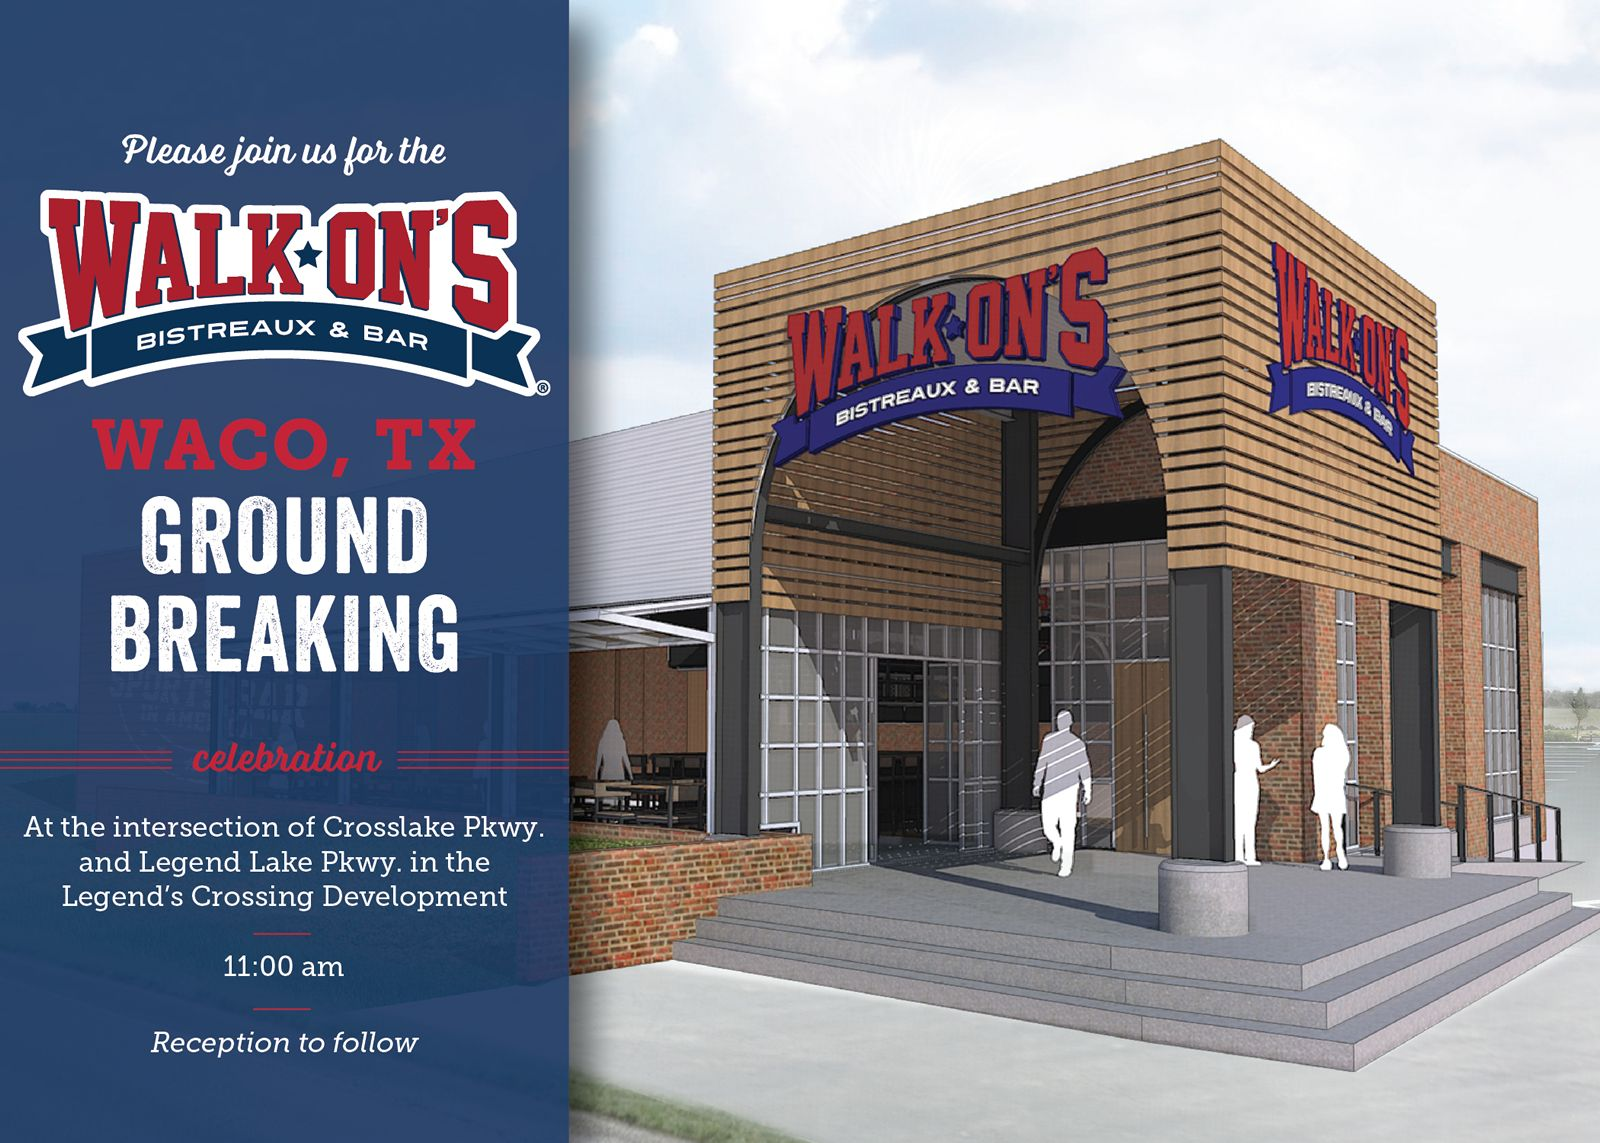 Walk On S To Break Ground On 1st Waco Restaurant Restaurantnews Com